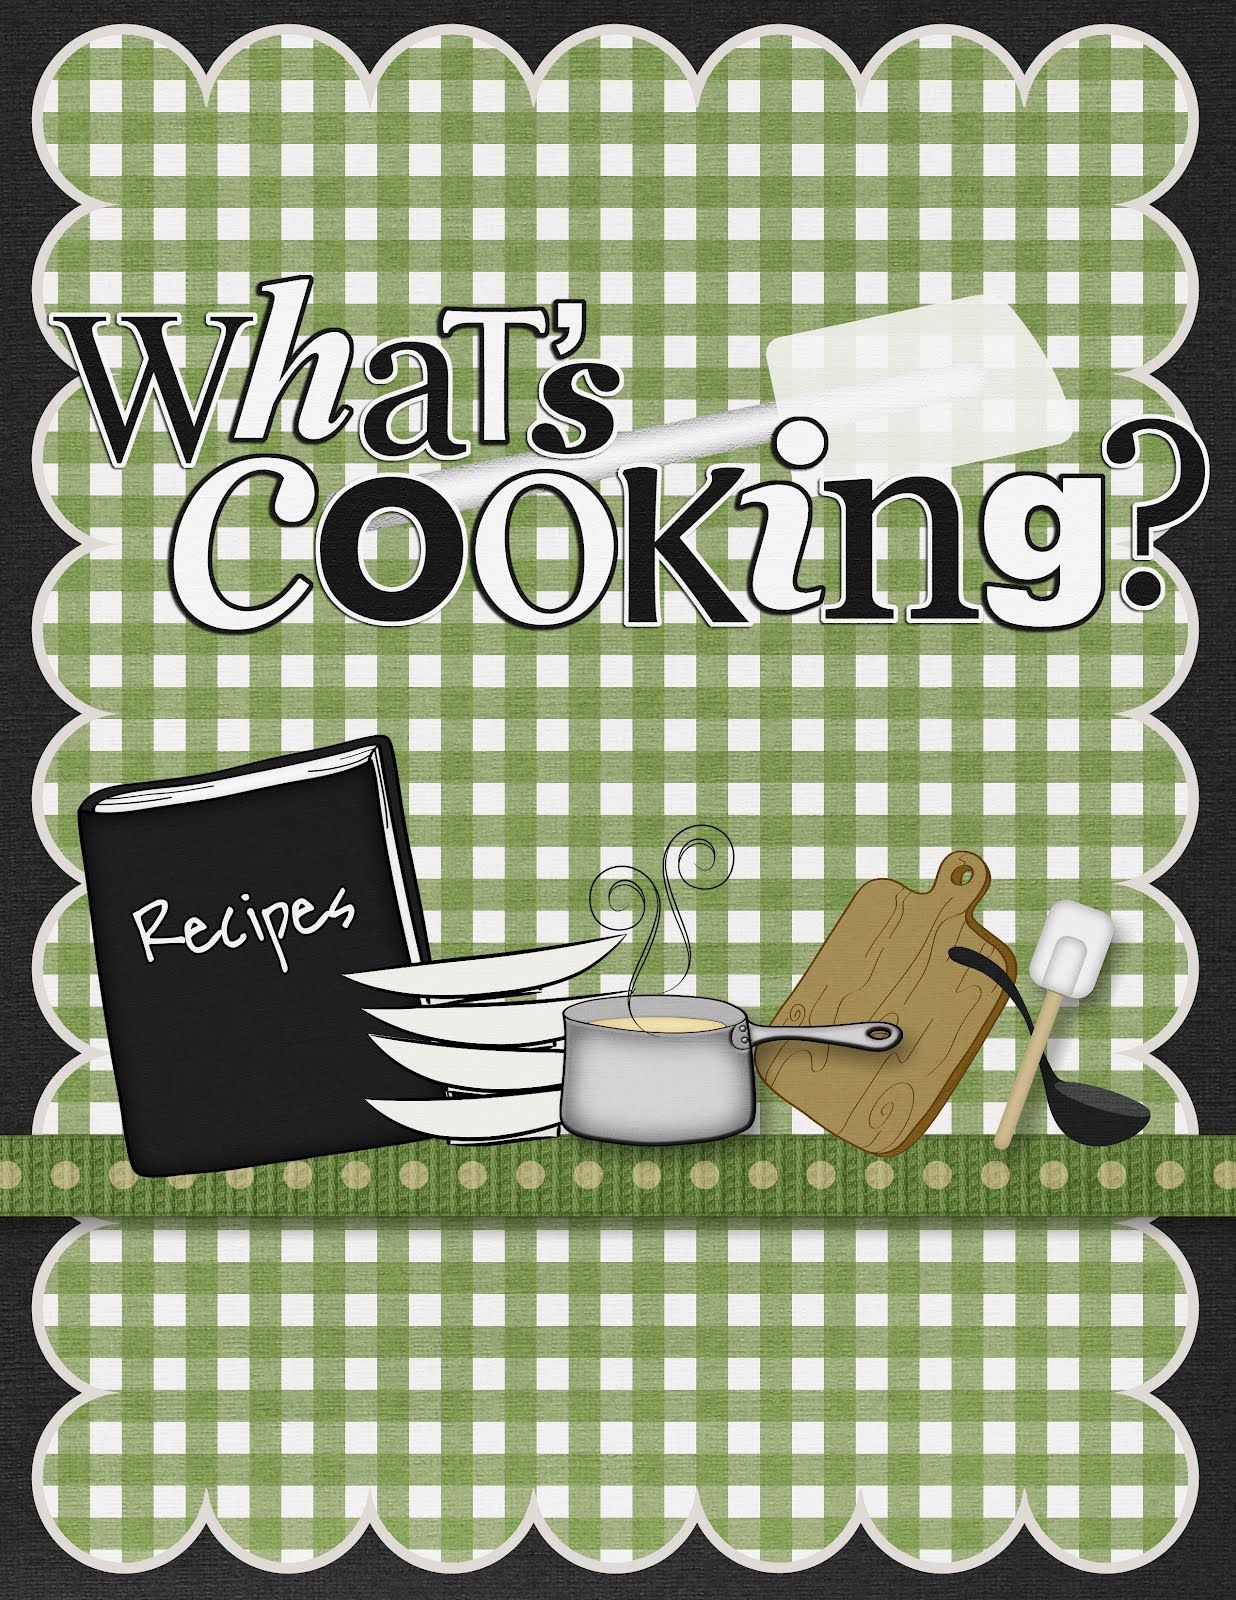 Cookbook Covers Printable Free : Cook book scrapbook cover pin if you like it books